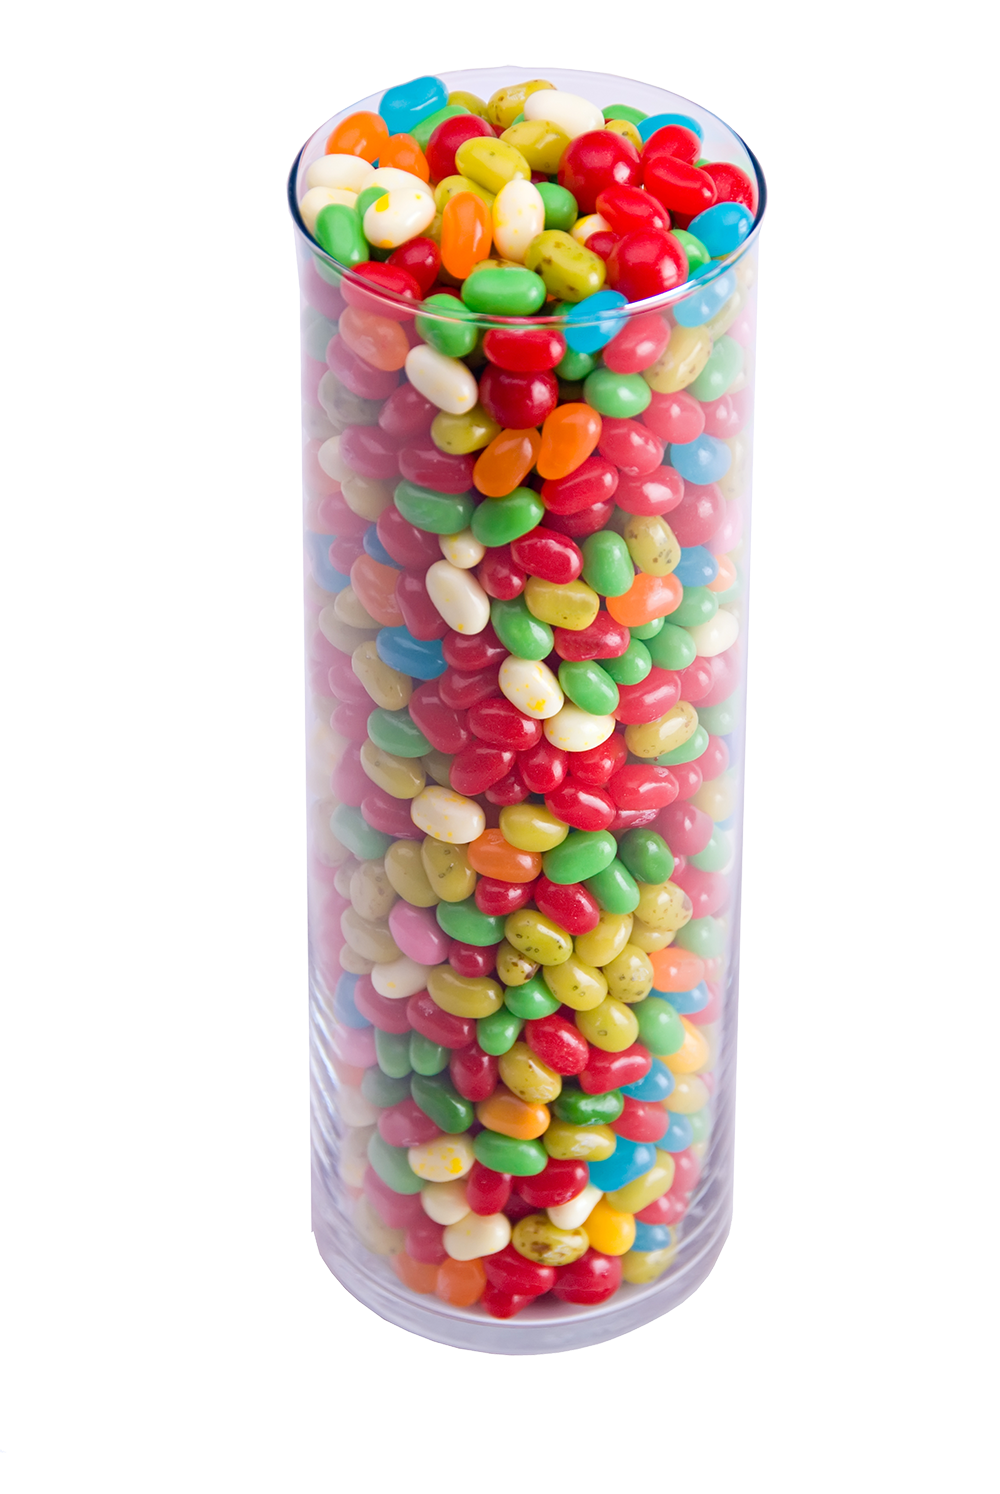 Jar clipart sprinkle. Jelly belly